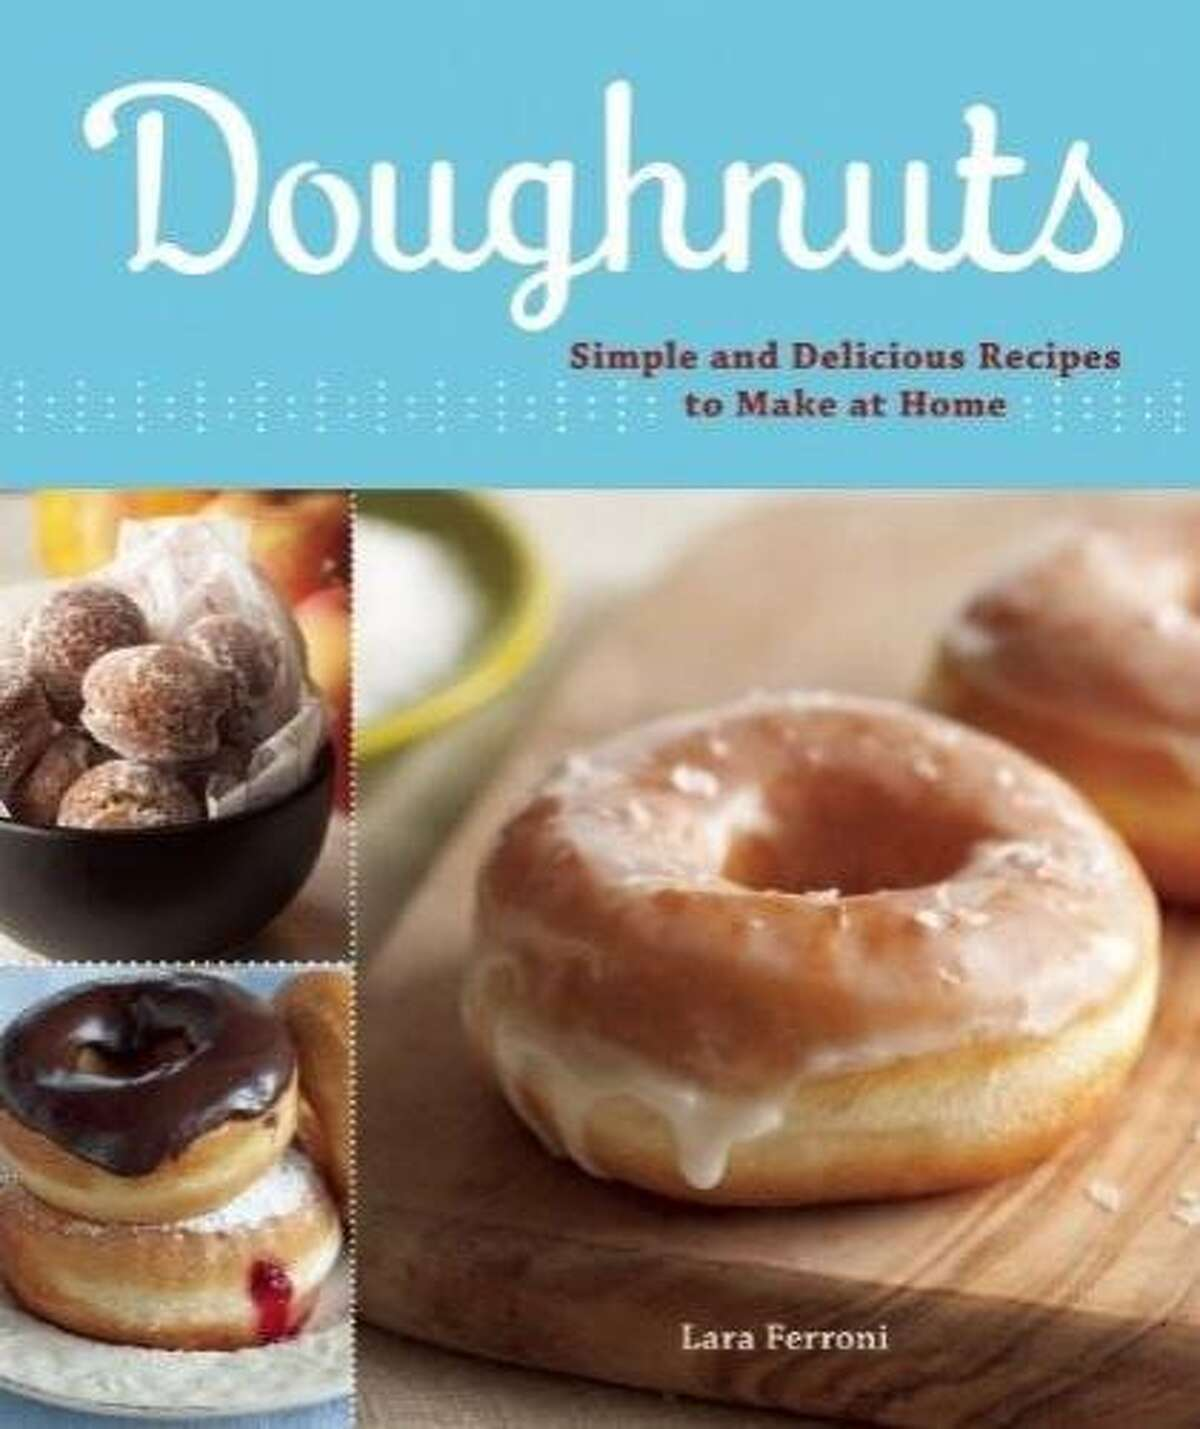 Doughnuts: Simple and Delicious Recipes to Make at Home by Lara Ferroni